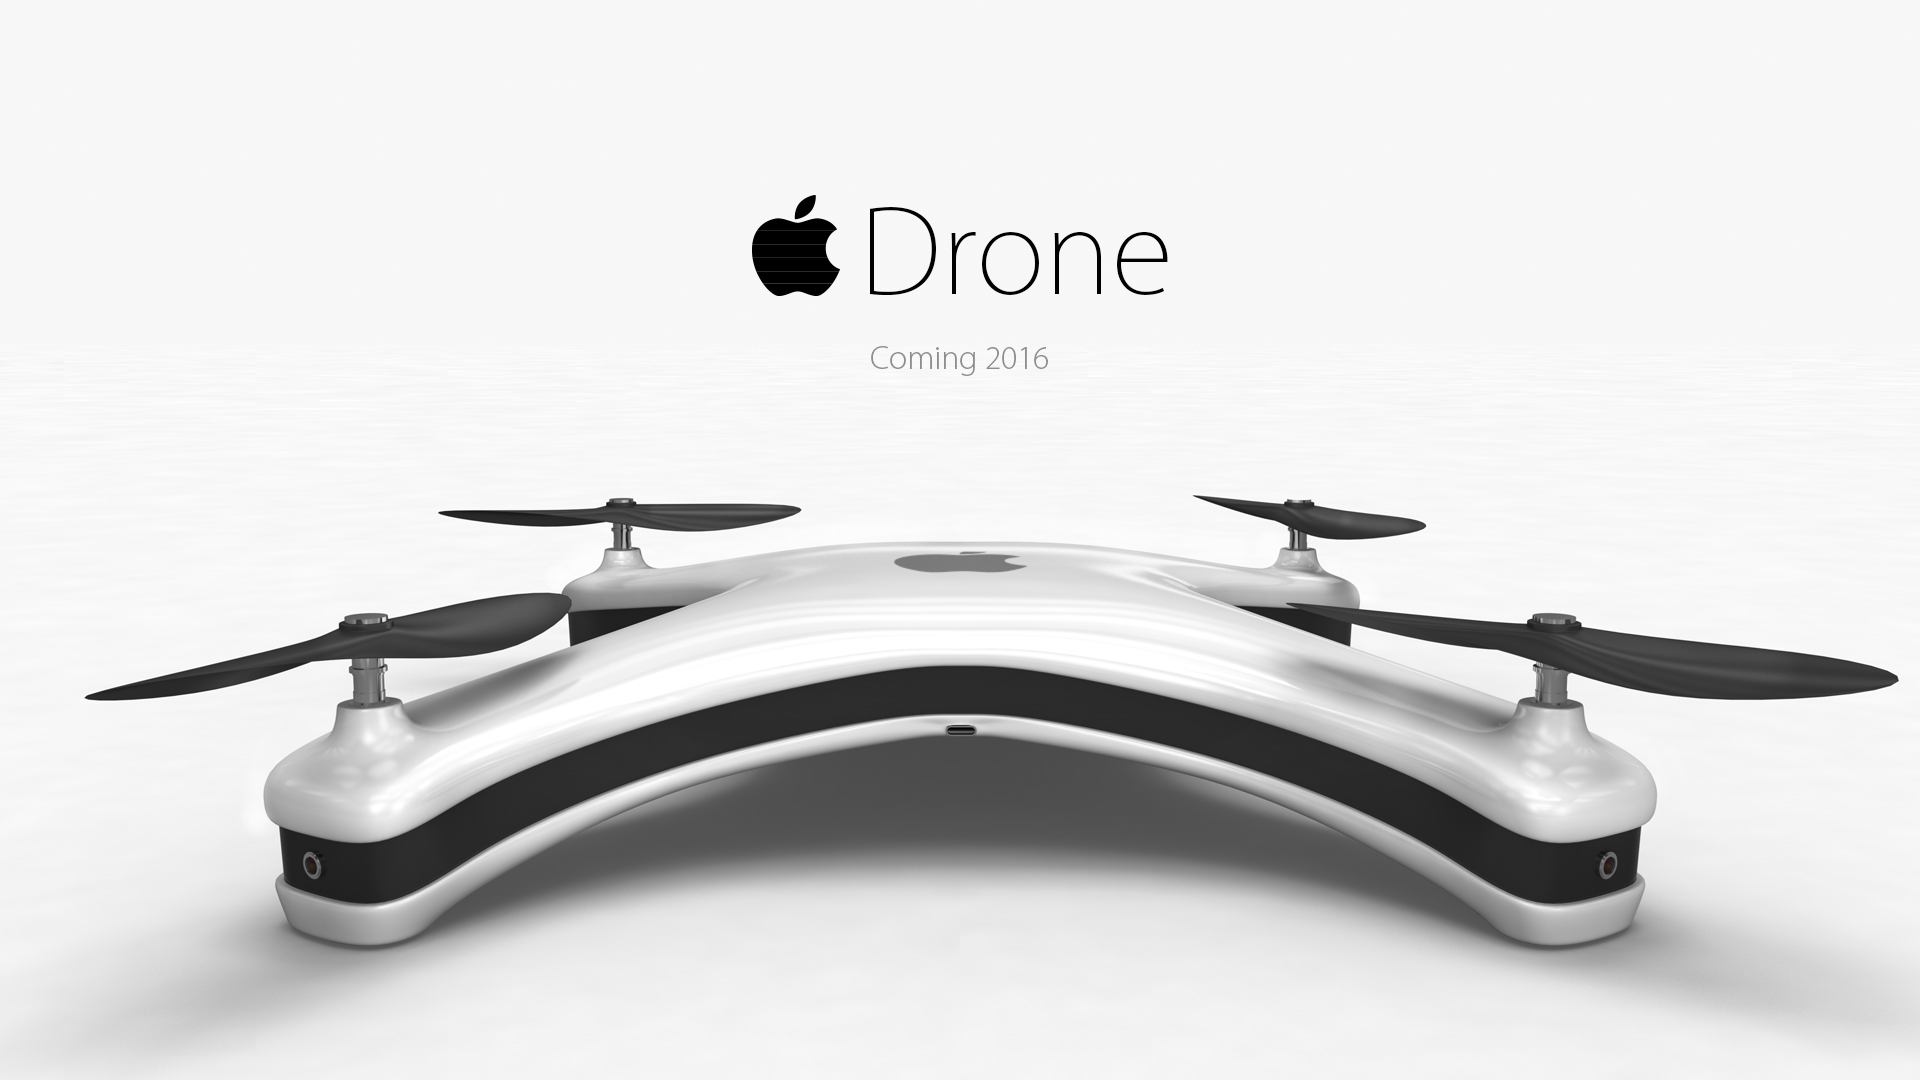 apple drone Introduction Would You Like This Apple Drone Concept?